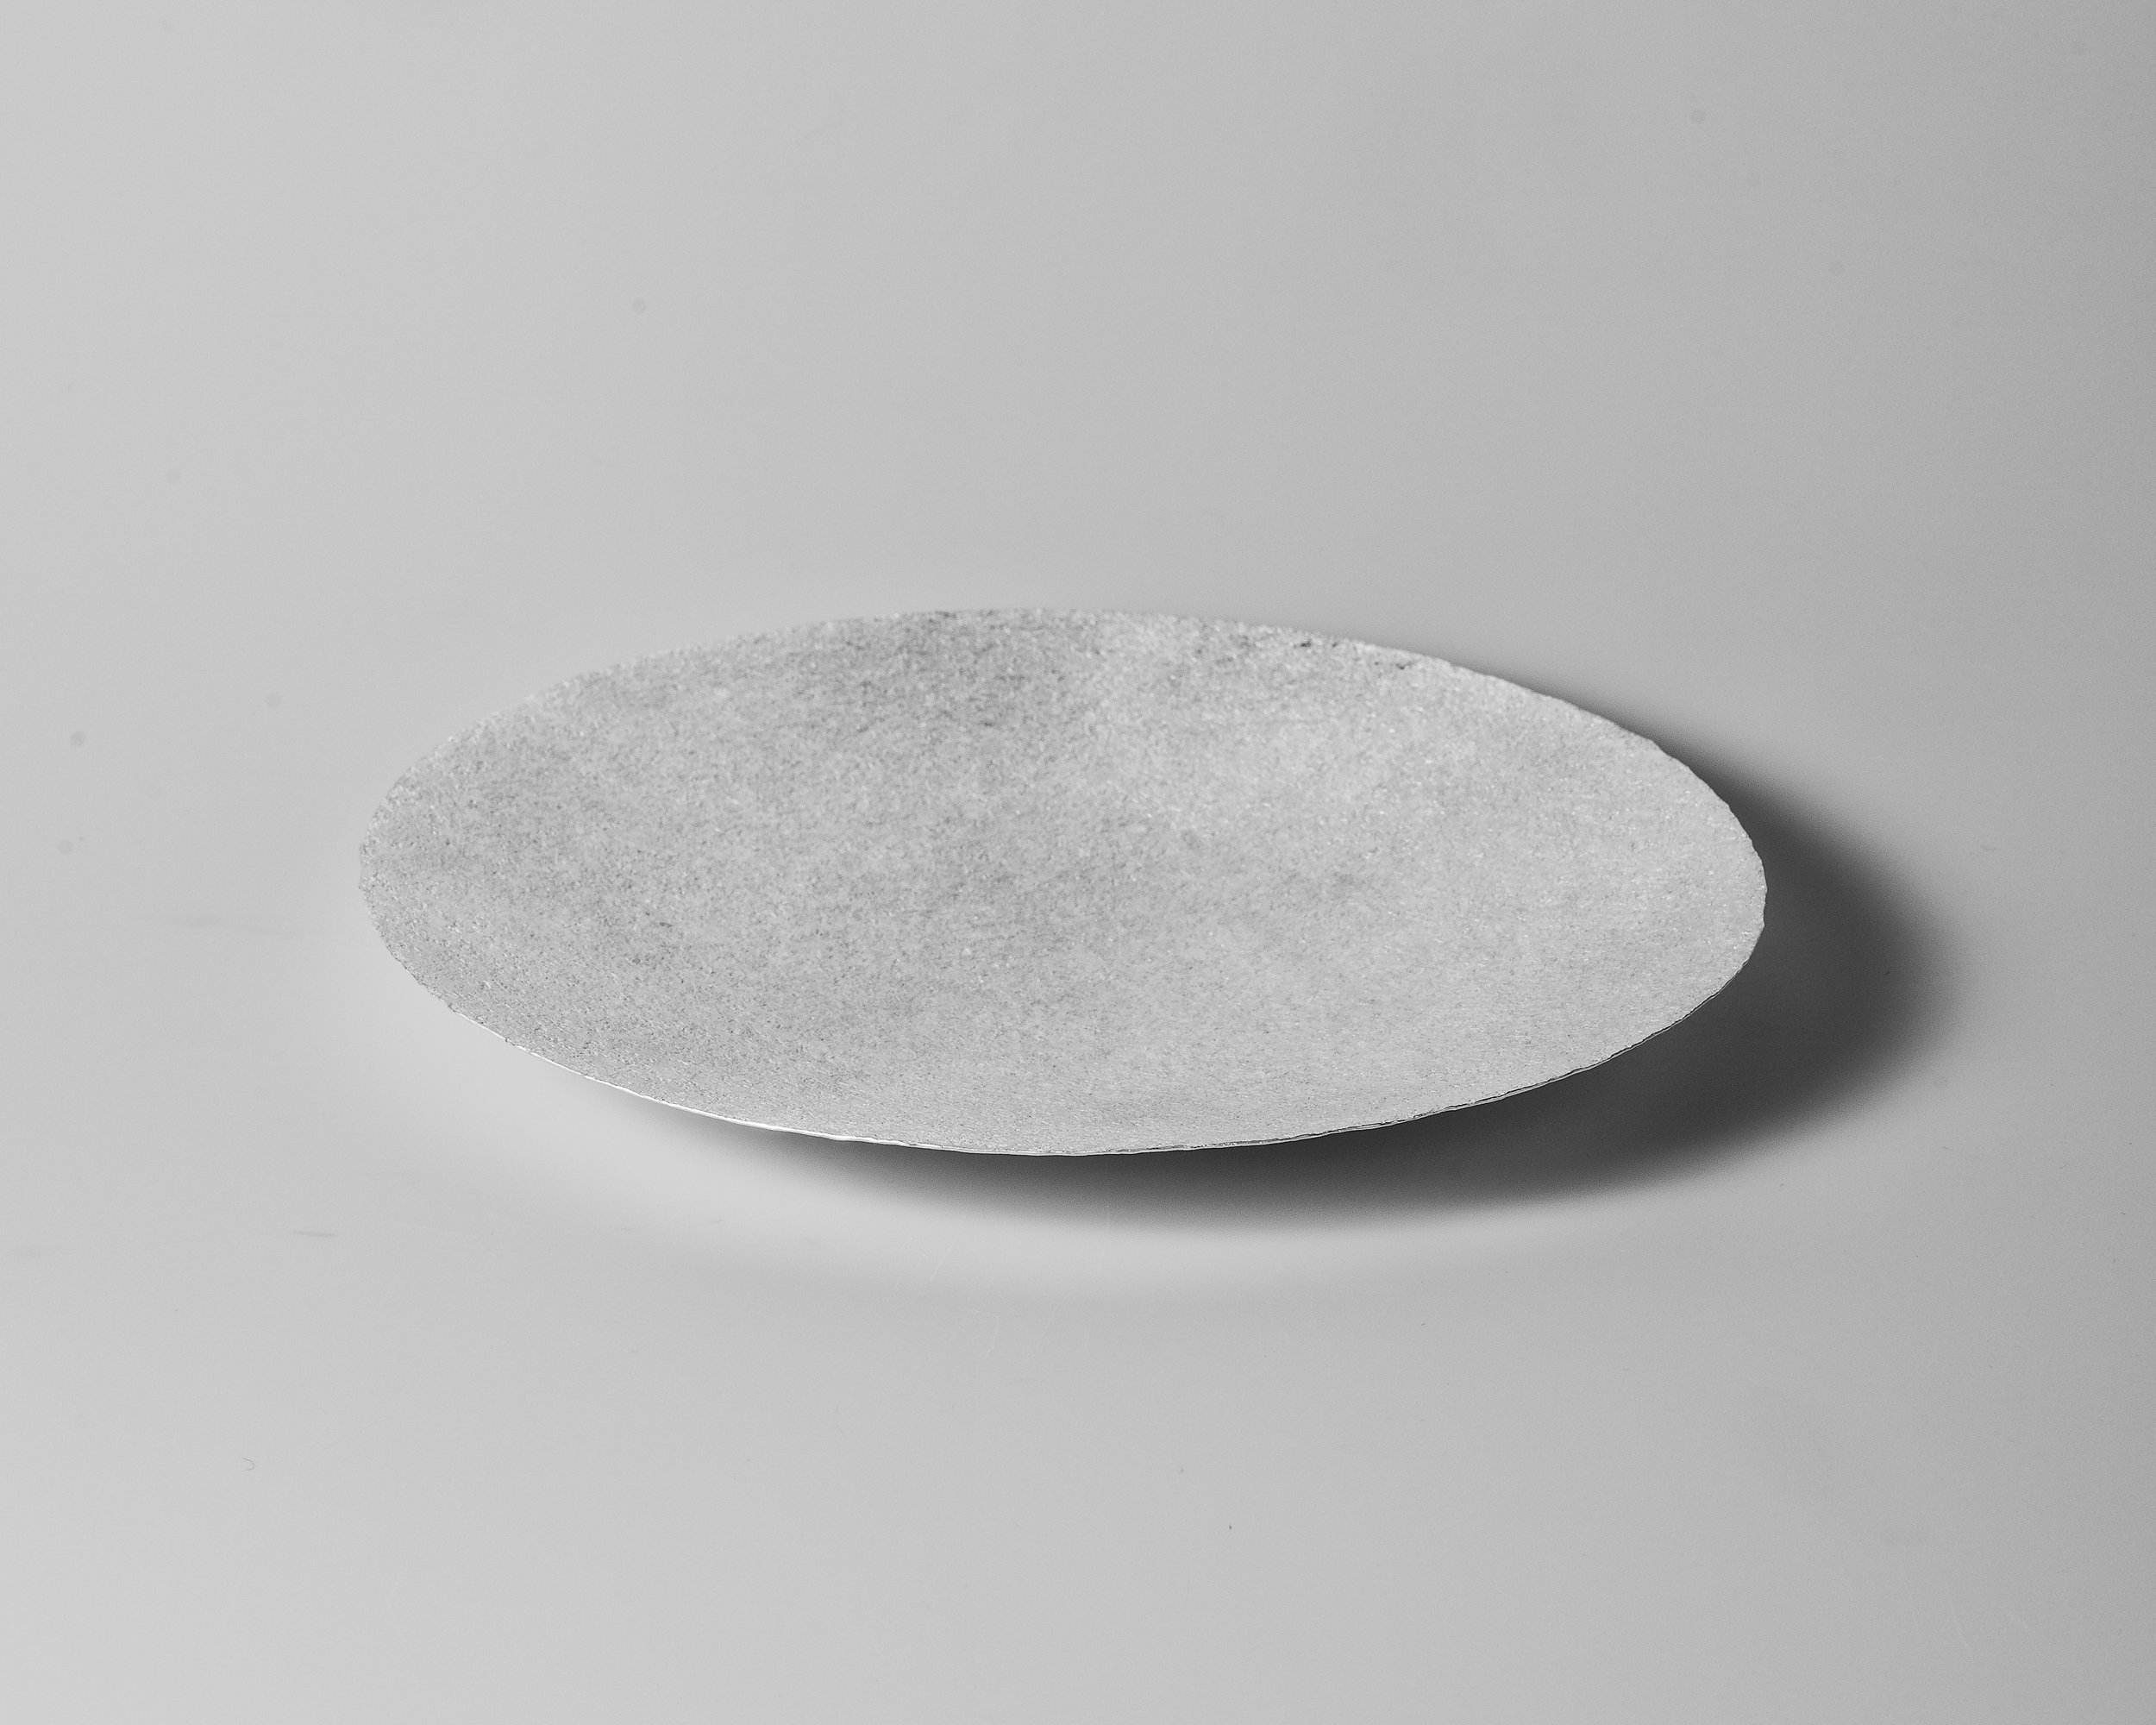 The importance of water IV (Dish), 2018  | Forged silver. 925 S. 576 g. H. 3 x W. 29 cm.  Photo credit: Christian Tviberg